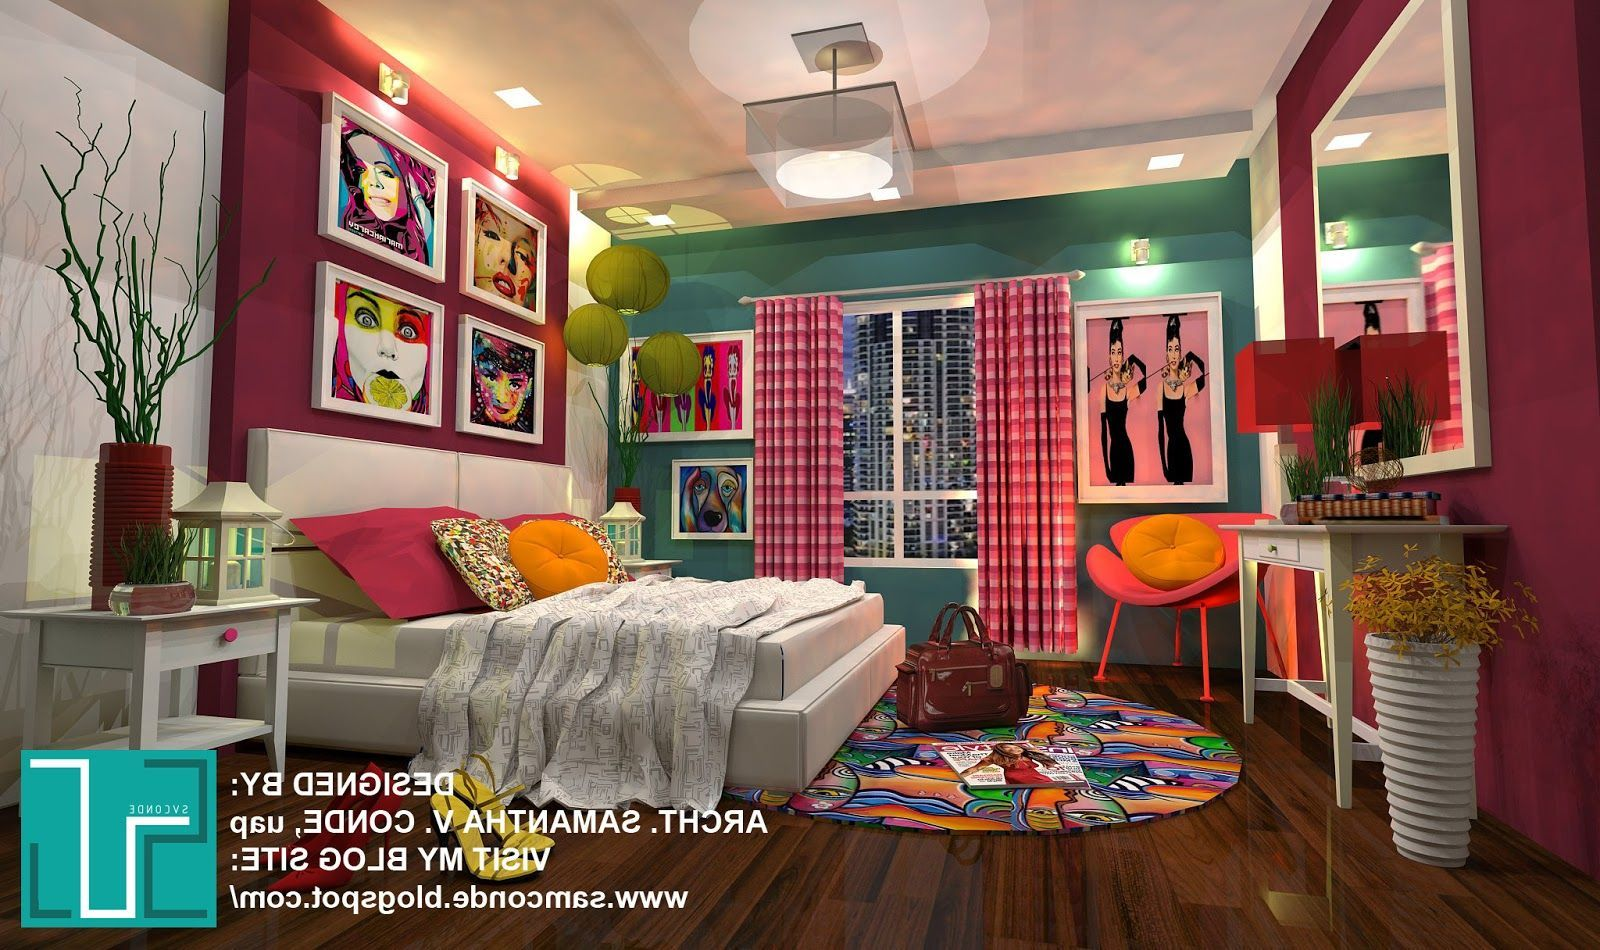 Interior Pop Art Interior Design And Decor Ideas For Striking And Cheerful Look Awesome Pop Art Bedroom S Pop Art Decor Pop Art Bedroom Interior Design Art